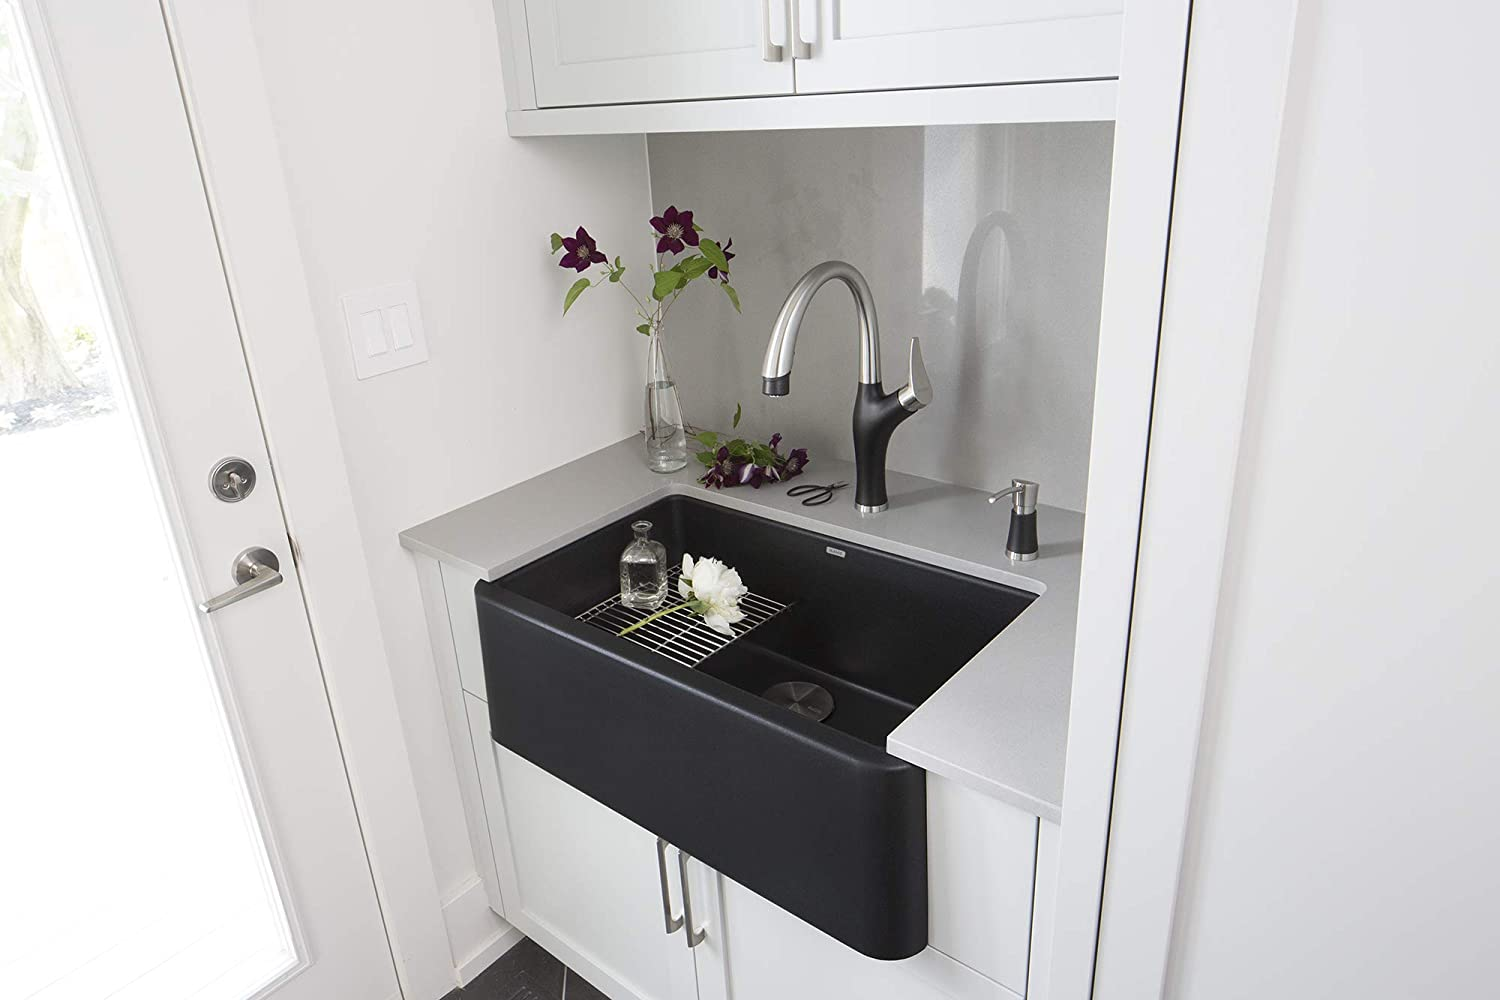 2 2 Gpm Blanco 442029 Artona Pull Stainless Kitchen Faucet